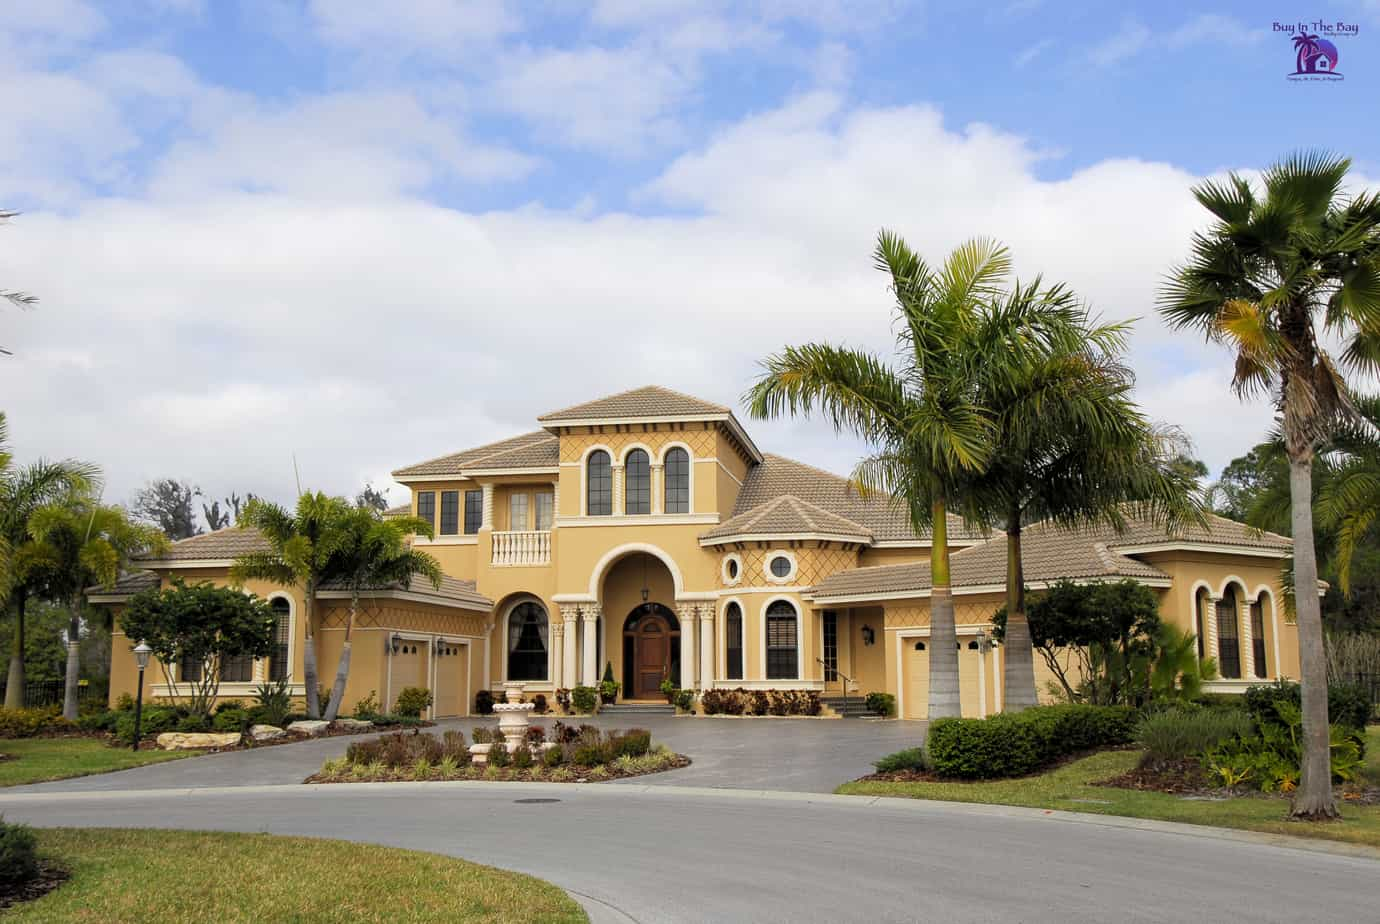 two story yellow executive style home that would be found in a neighborhood like lithia fish hawk ranch florida